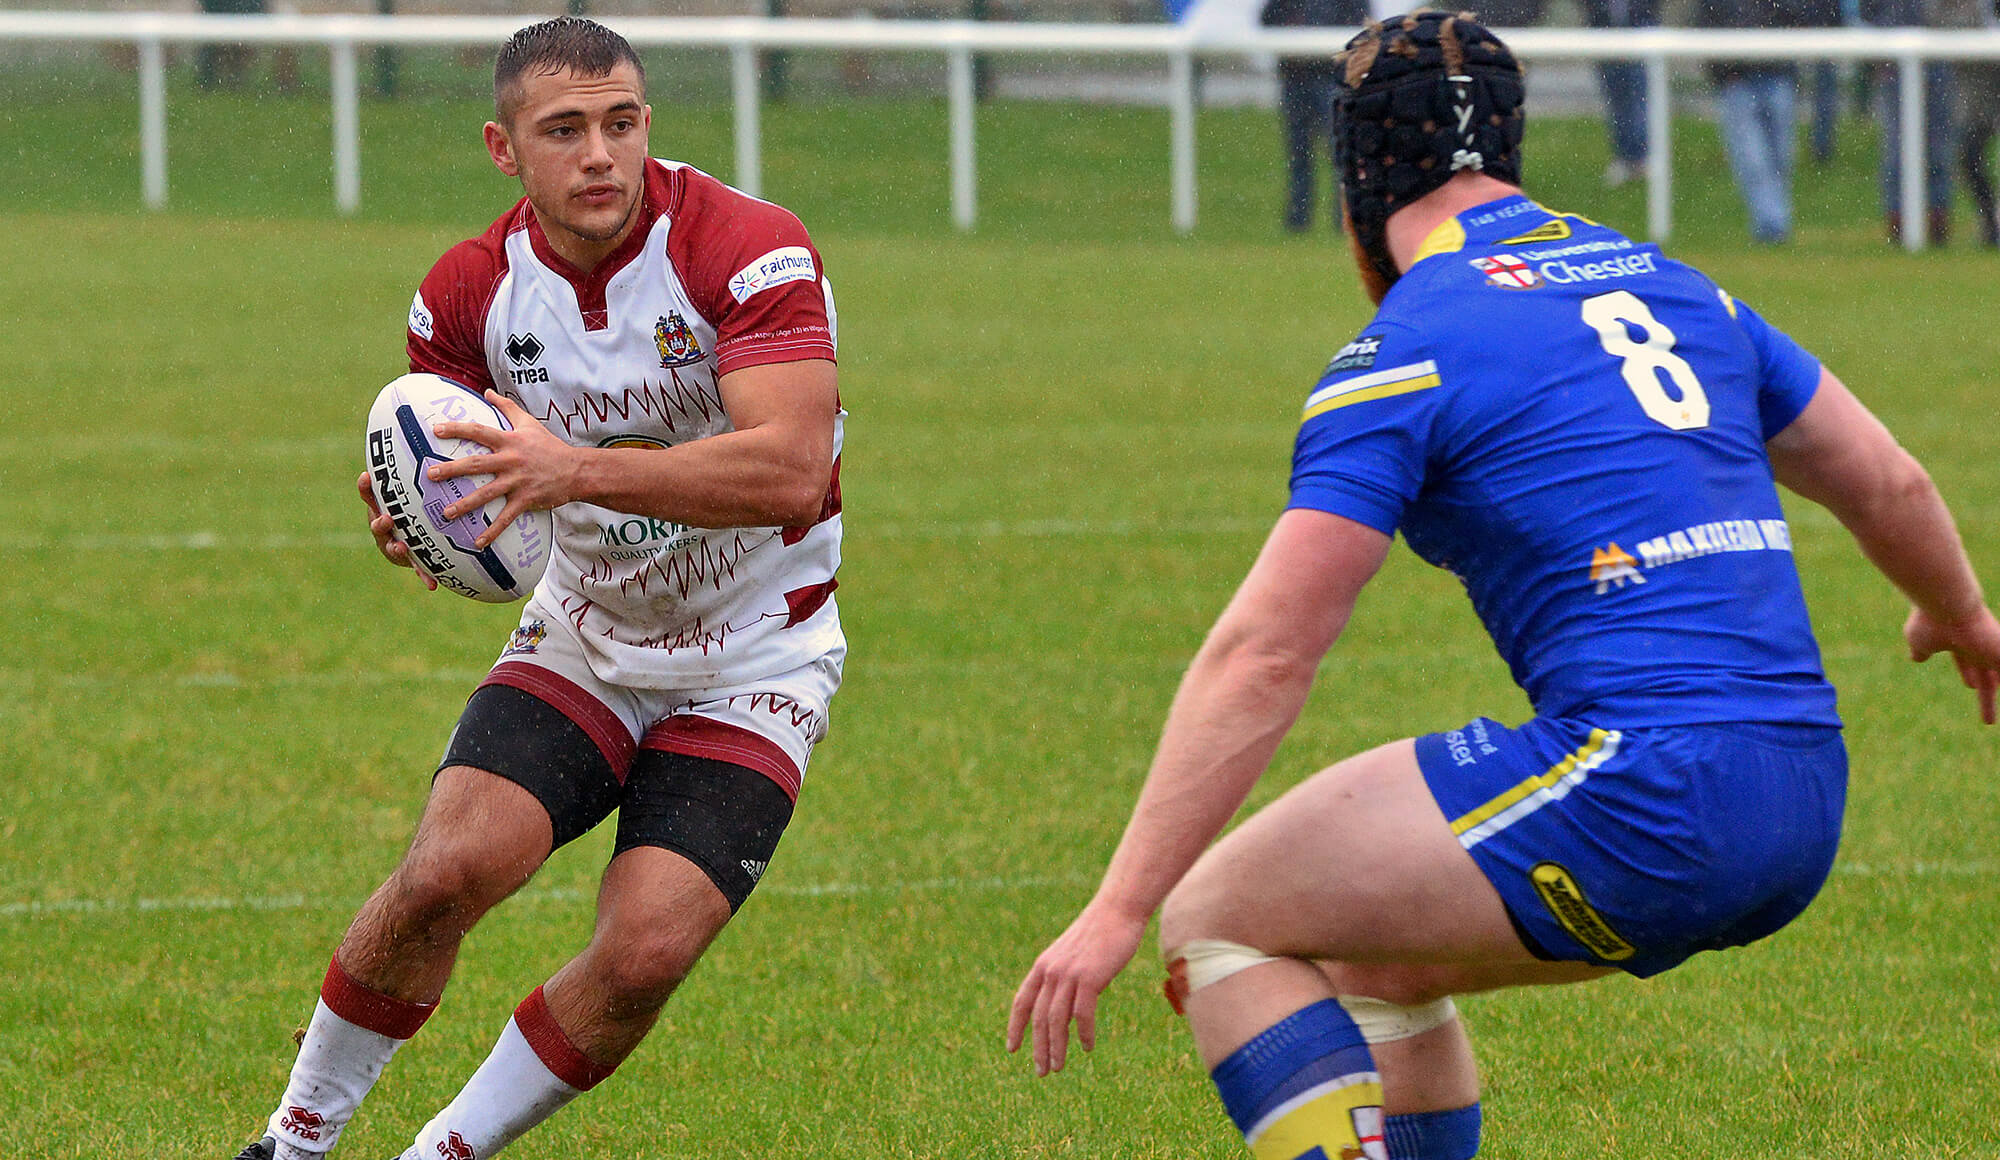 Shelford Bows Out In Style